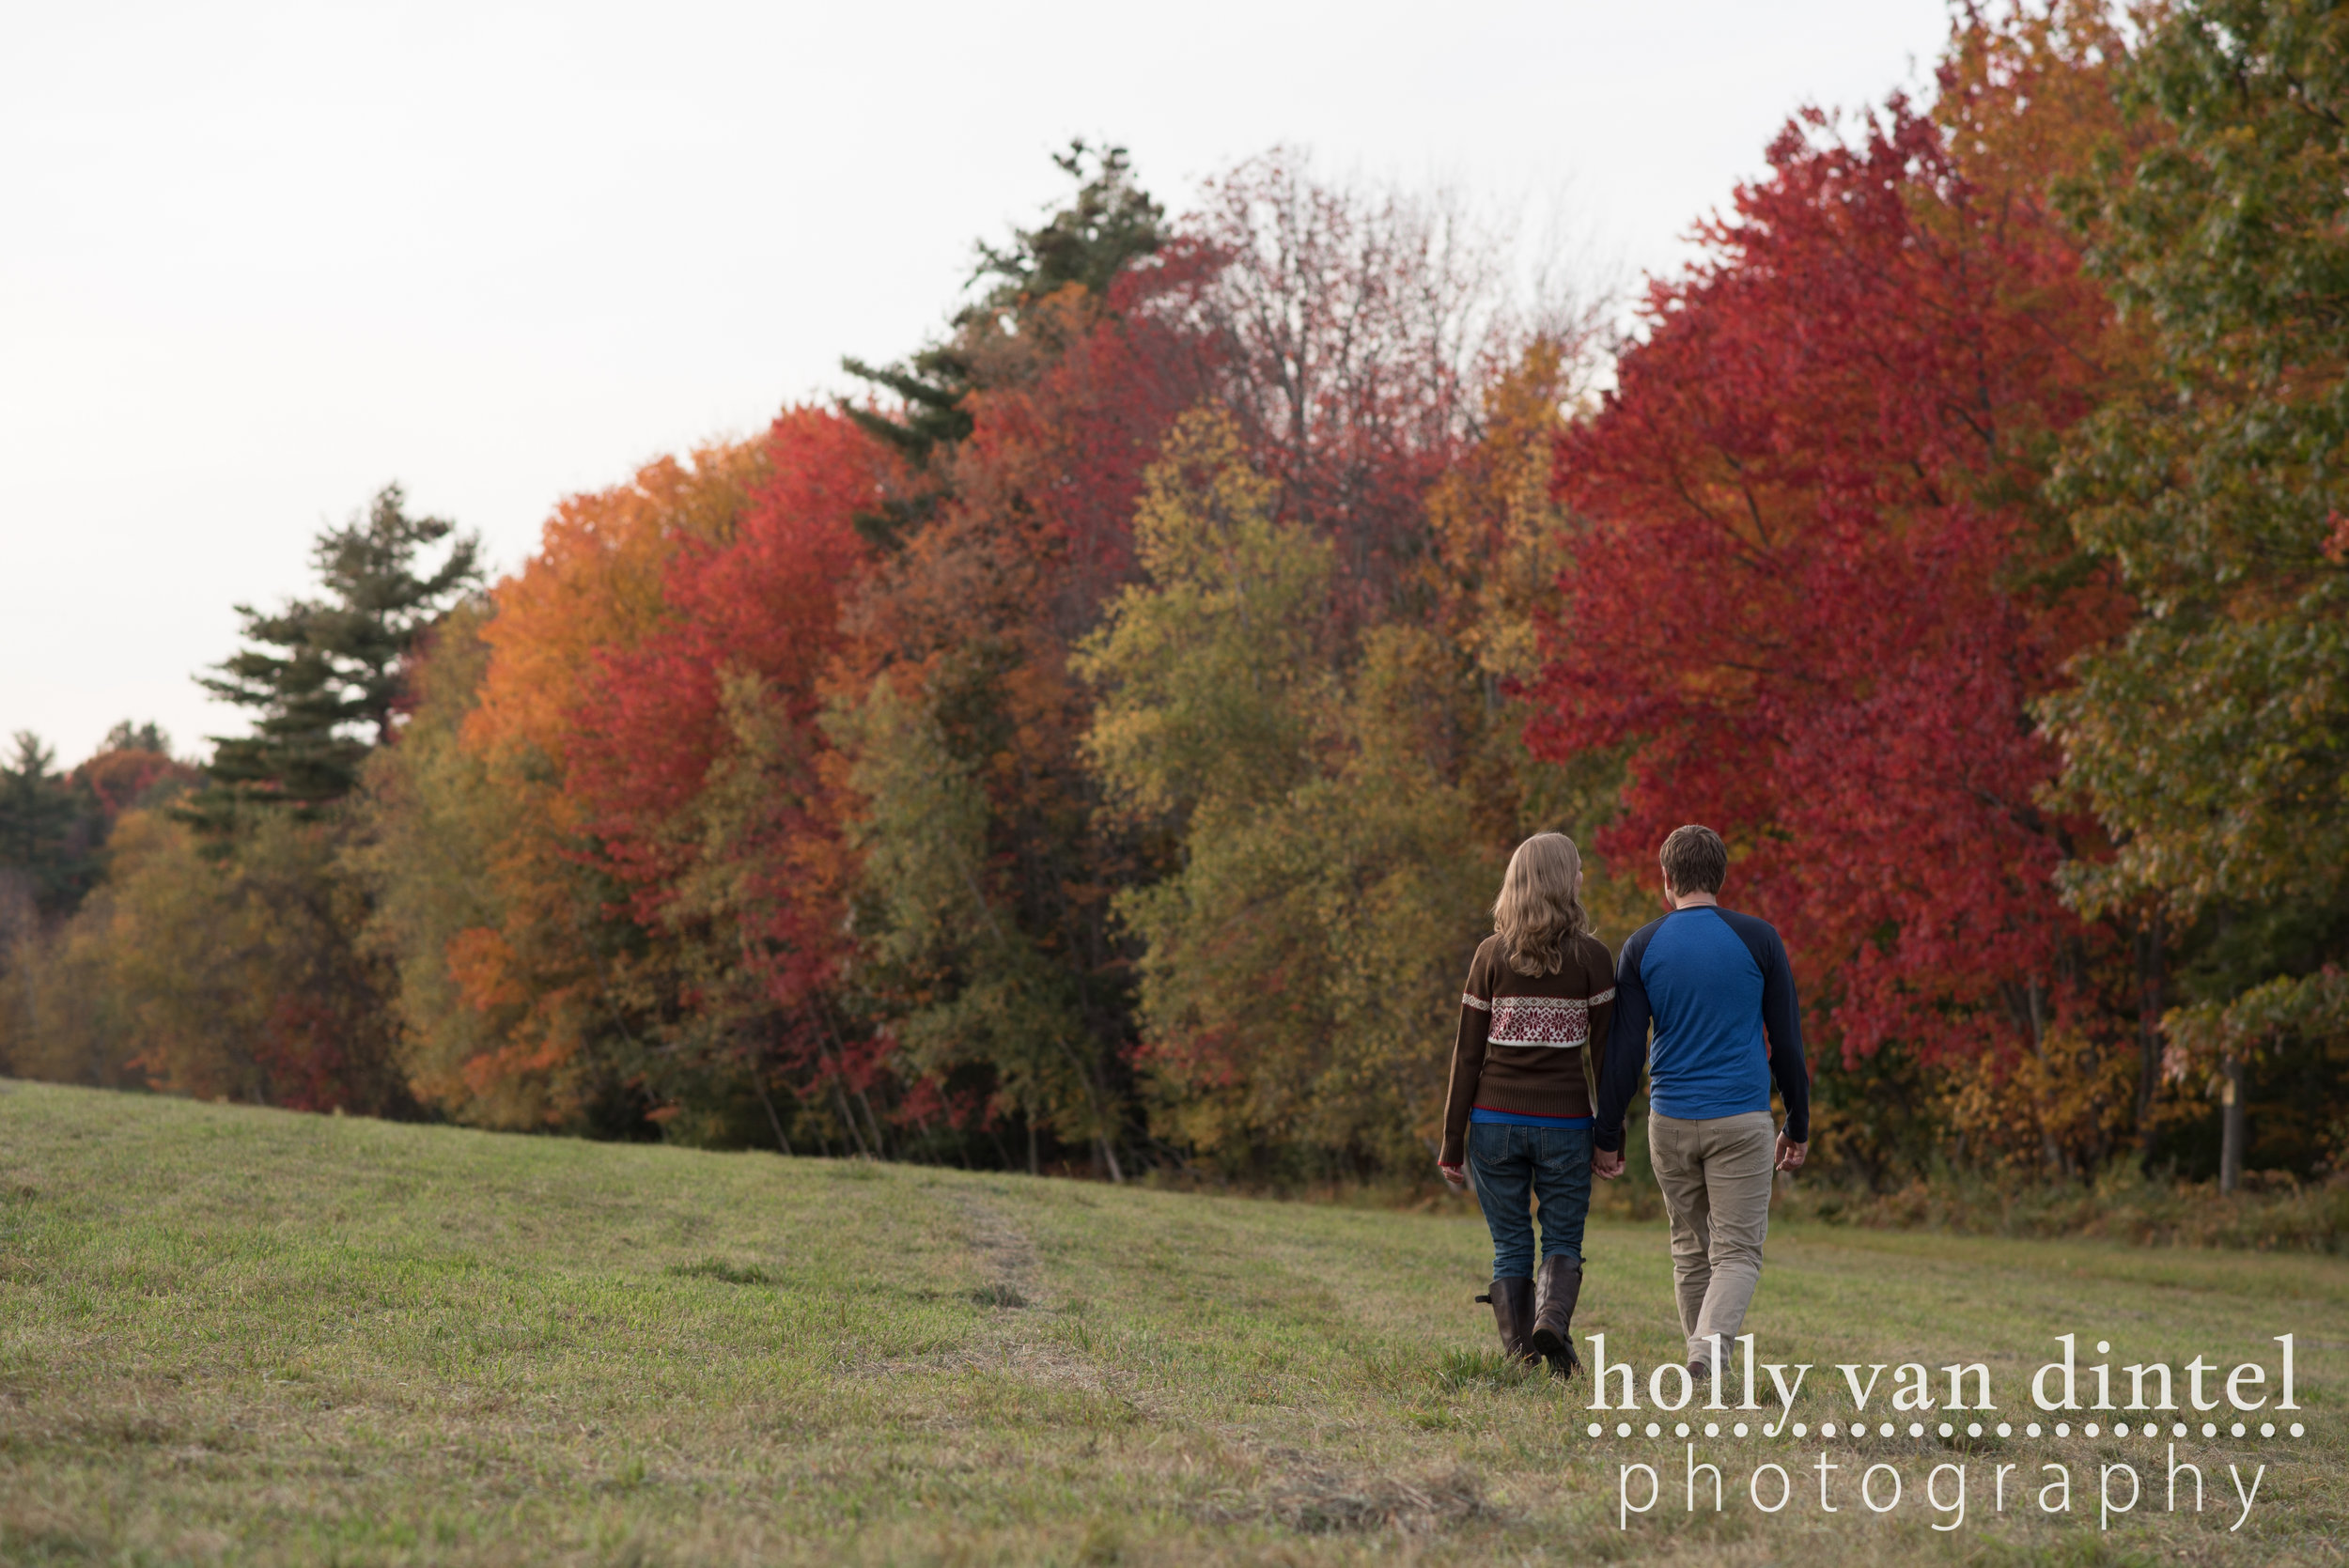 Engaged couple walking in field holding hands, fall foliage